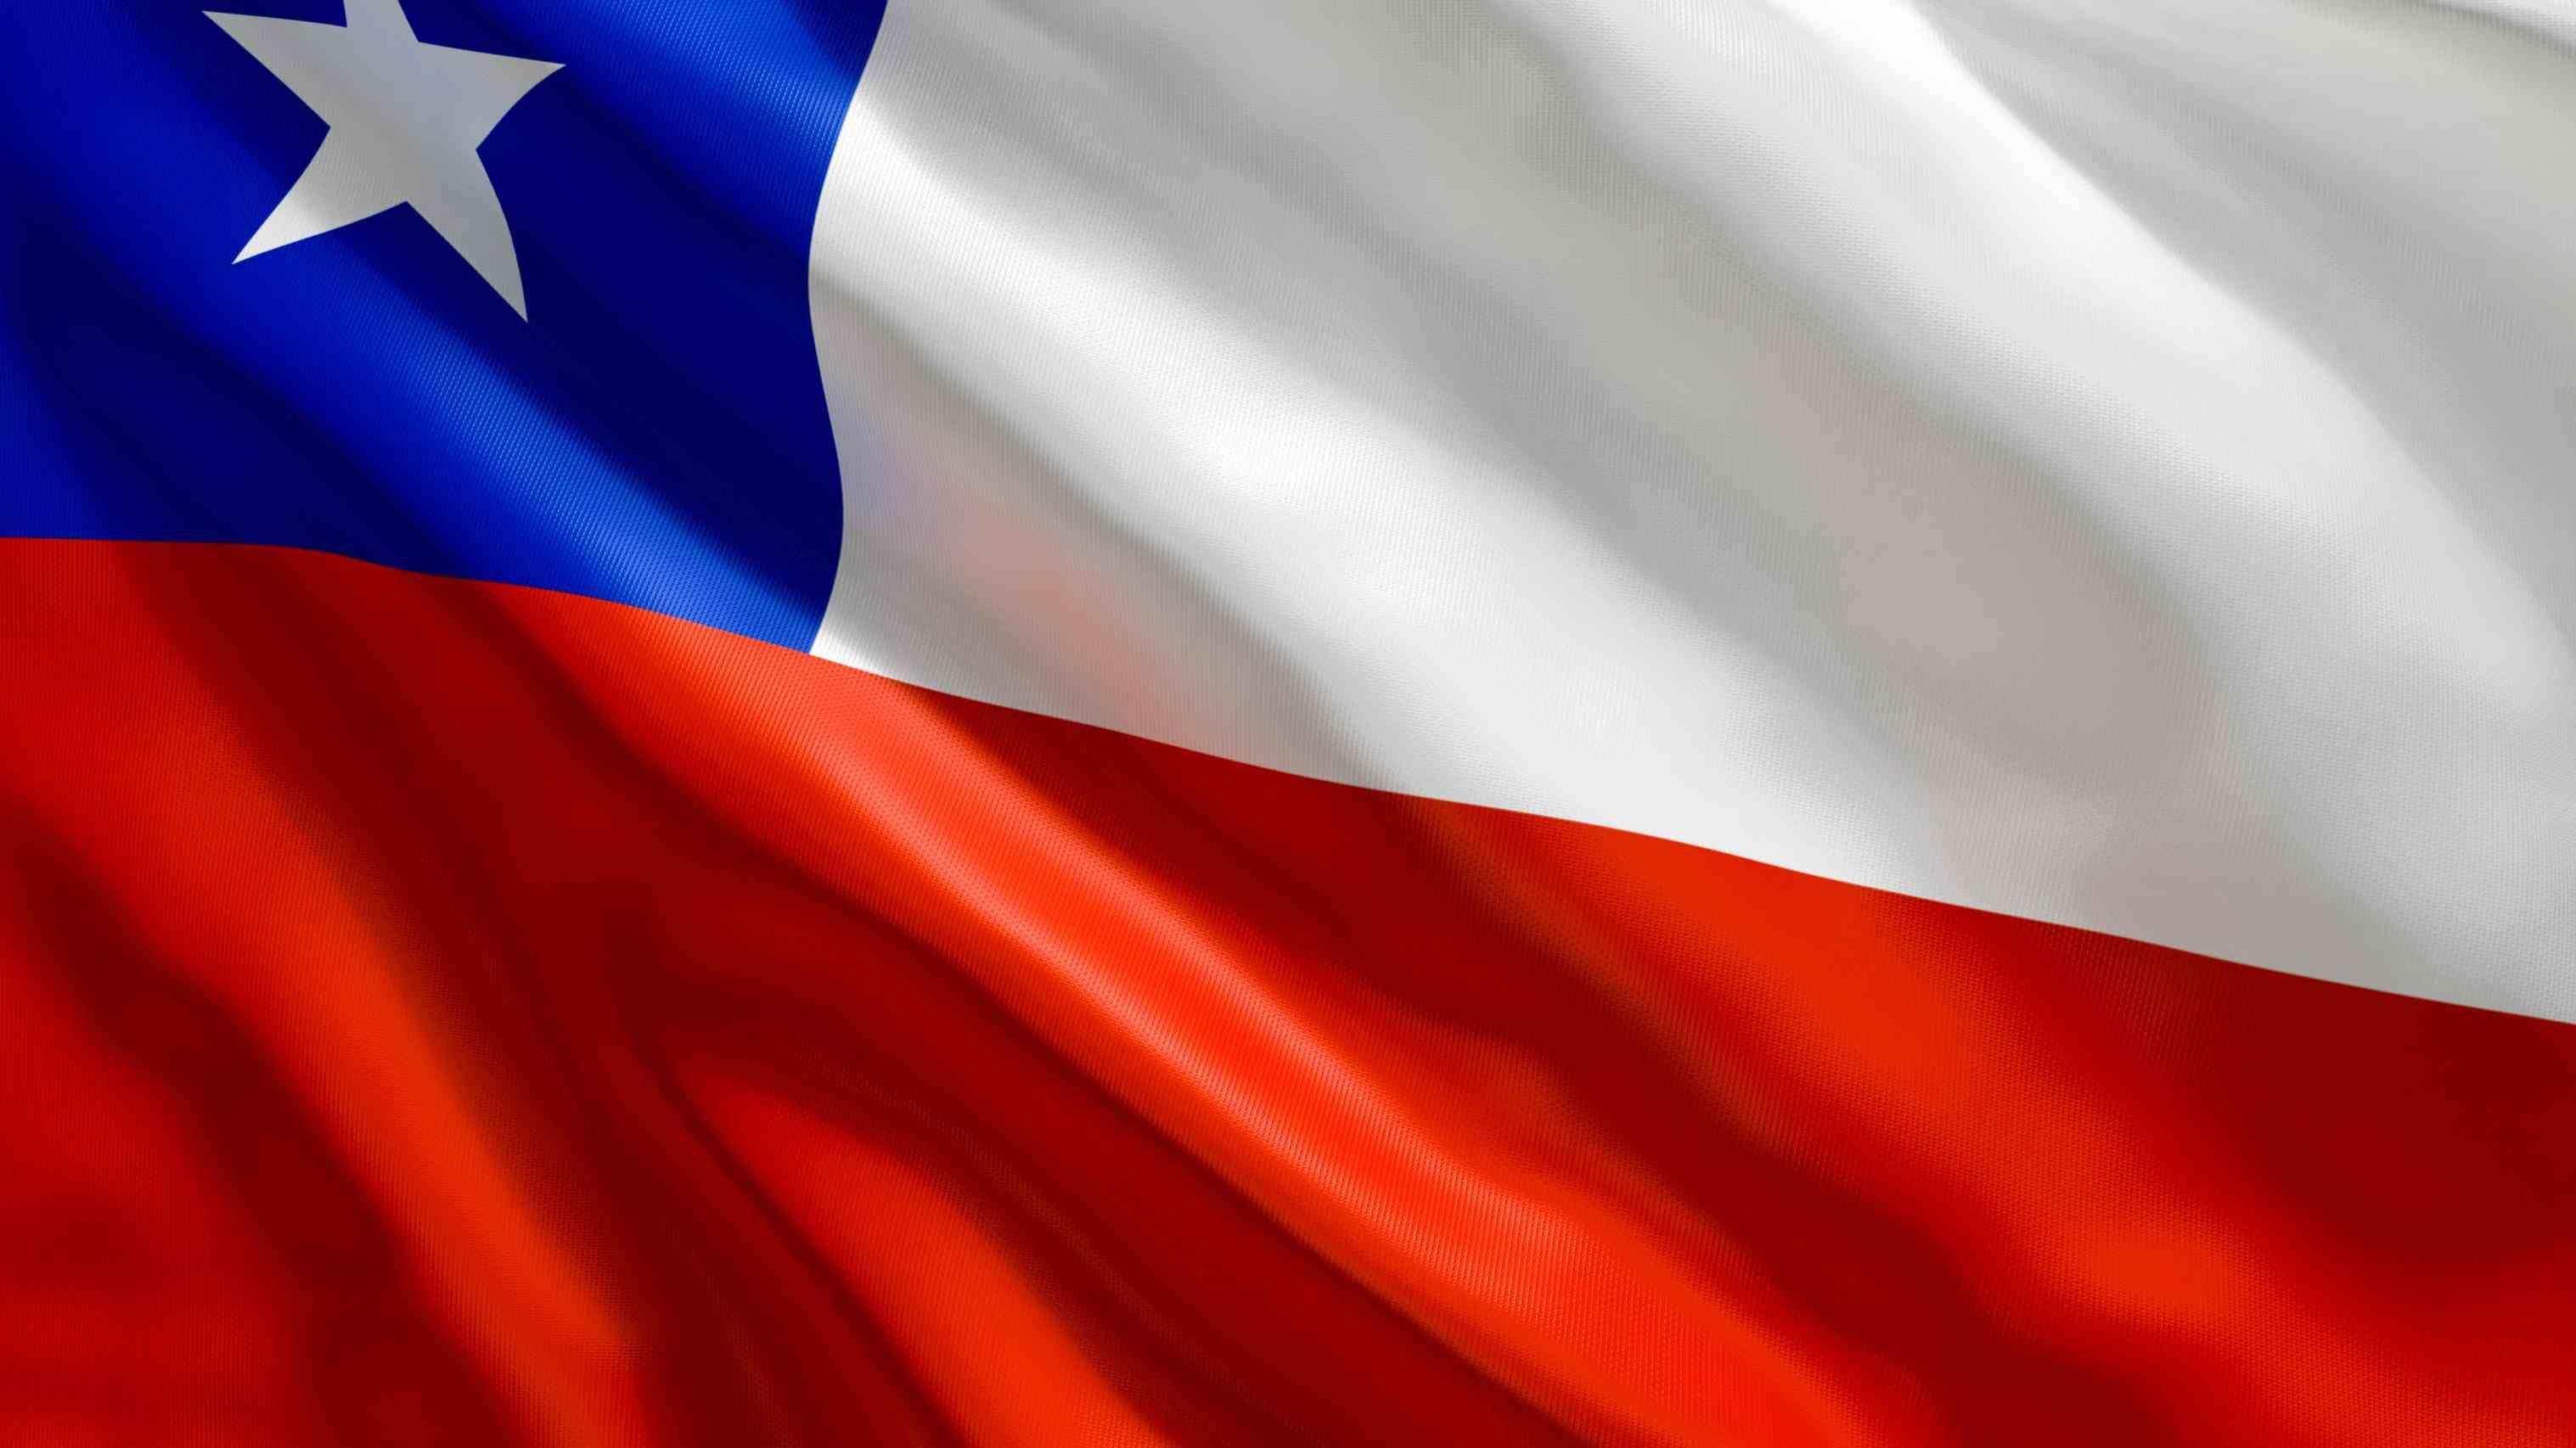 on emaze on santiago chile flag emaze this is a picture of the